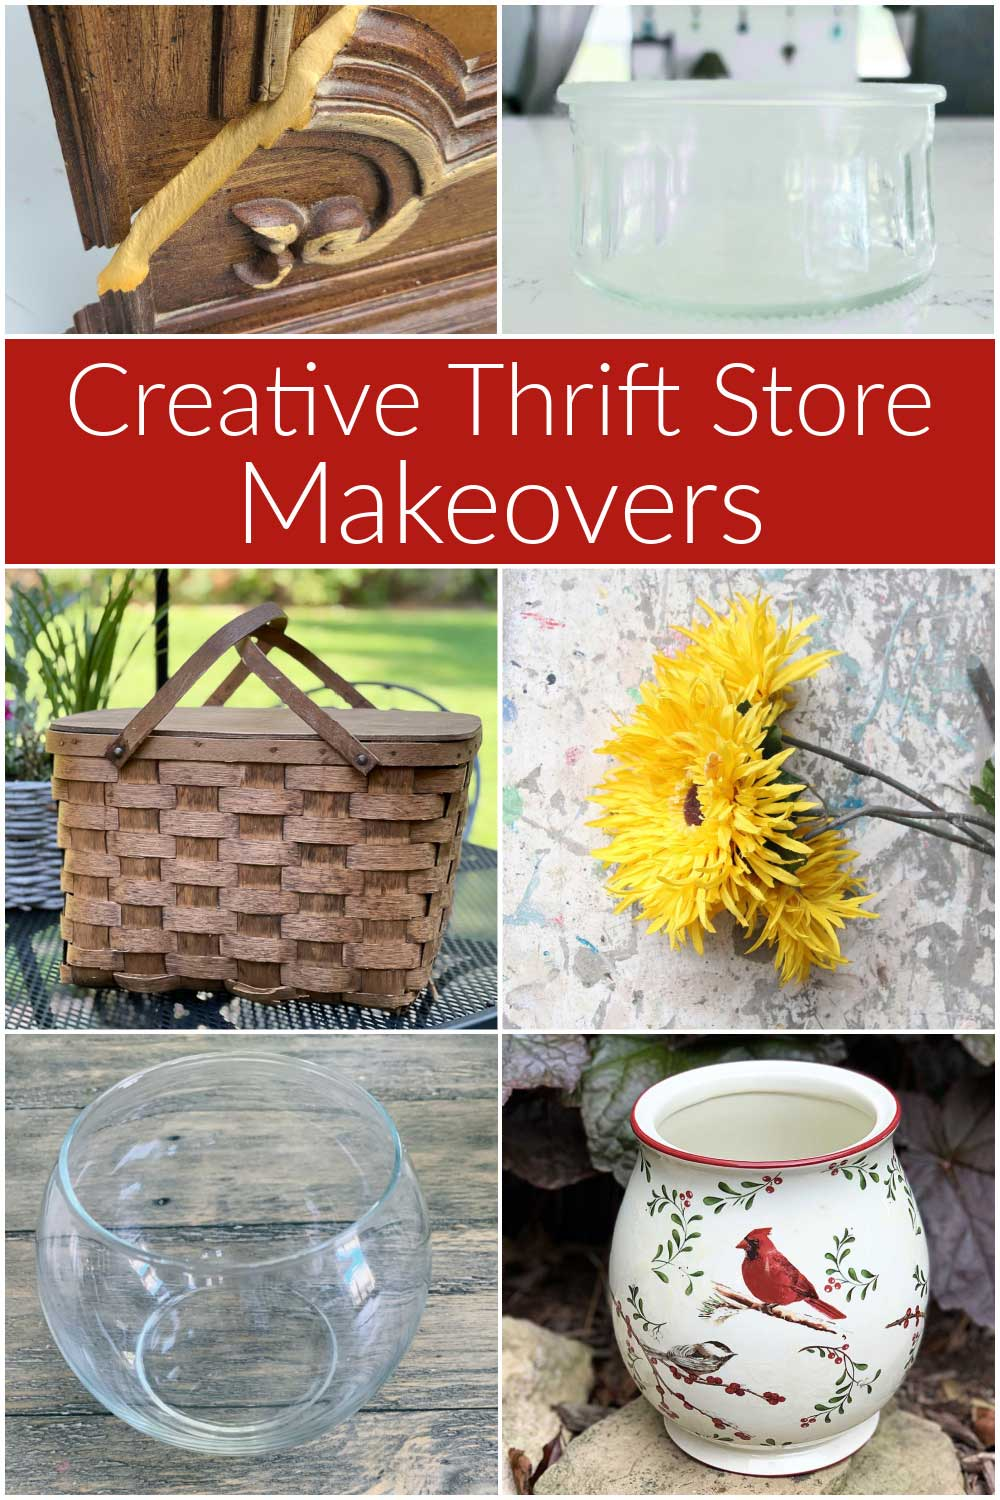 Upcycling projects made with items commonly found at thrift stores or in your closet and cupboards.